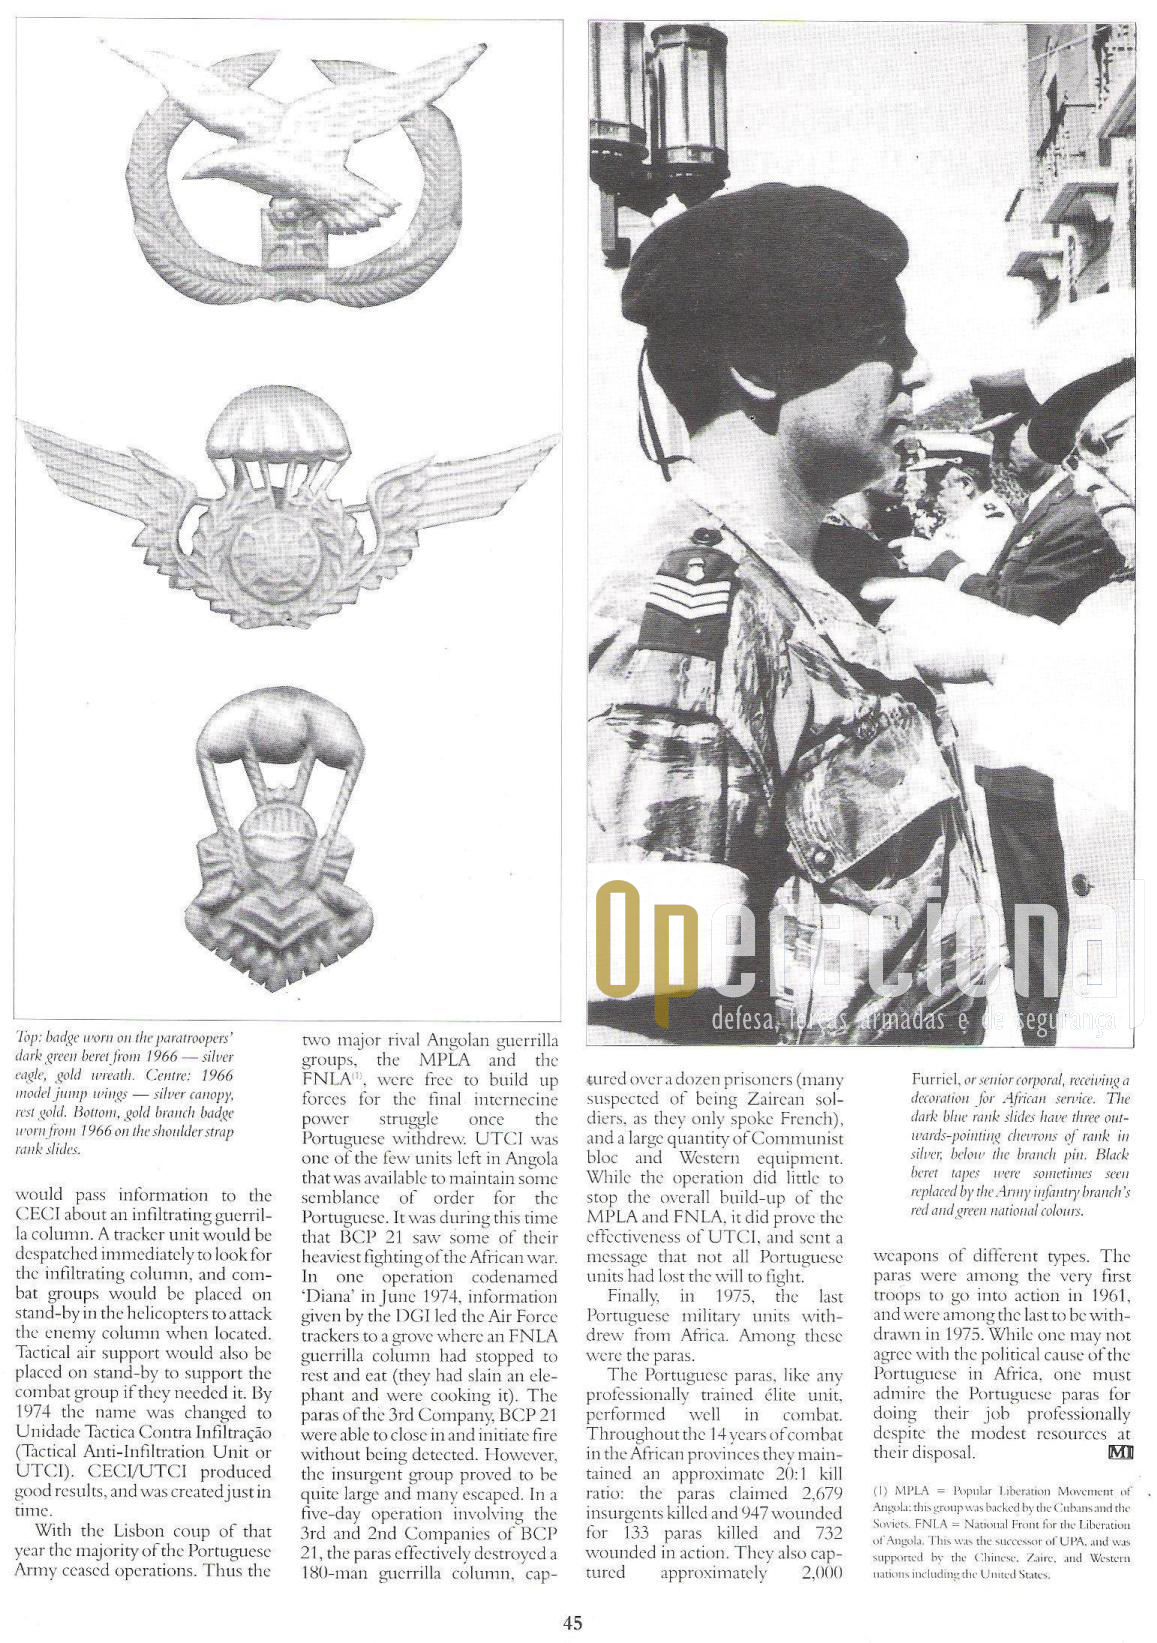 012-military-illustrated-75-copy